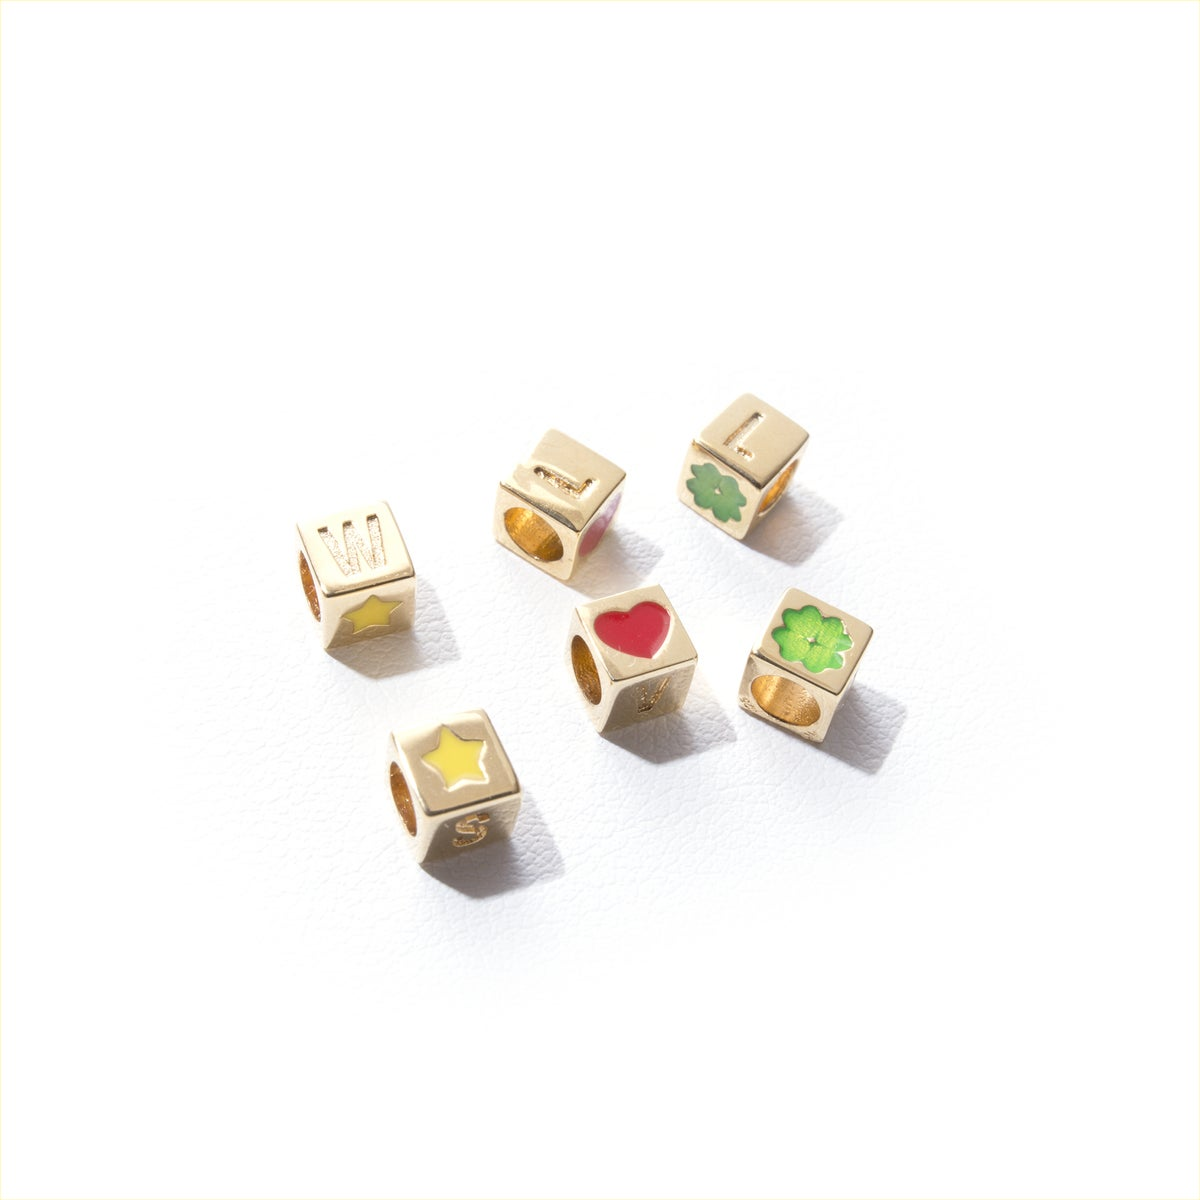 Image of WISH+LOVE+LUCK<br>CUBES